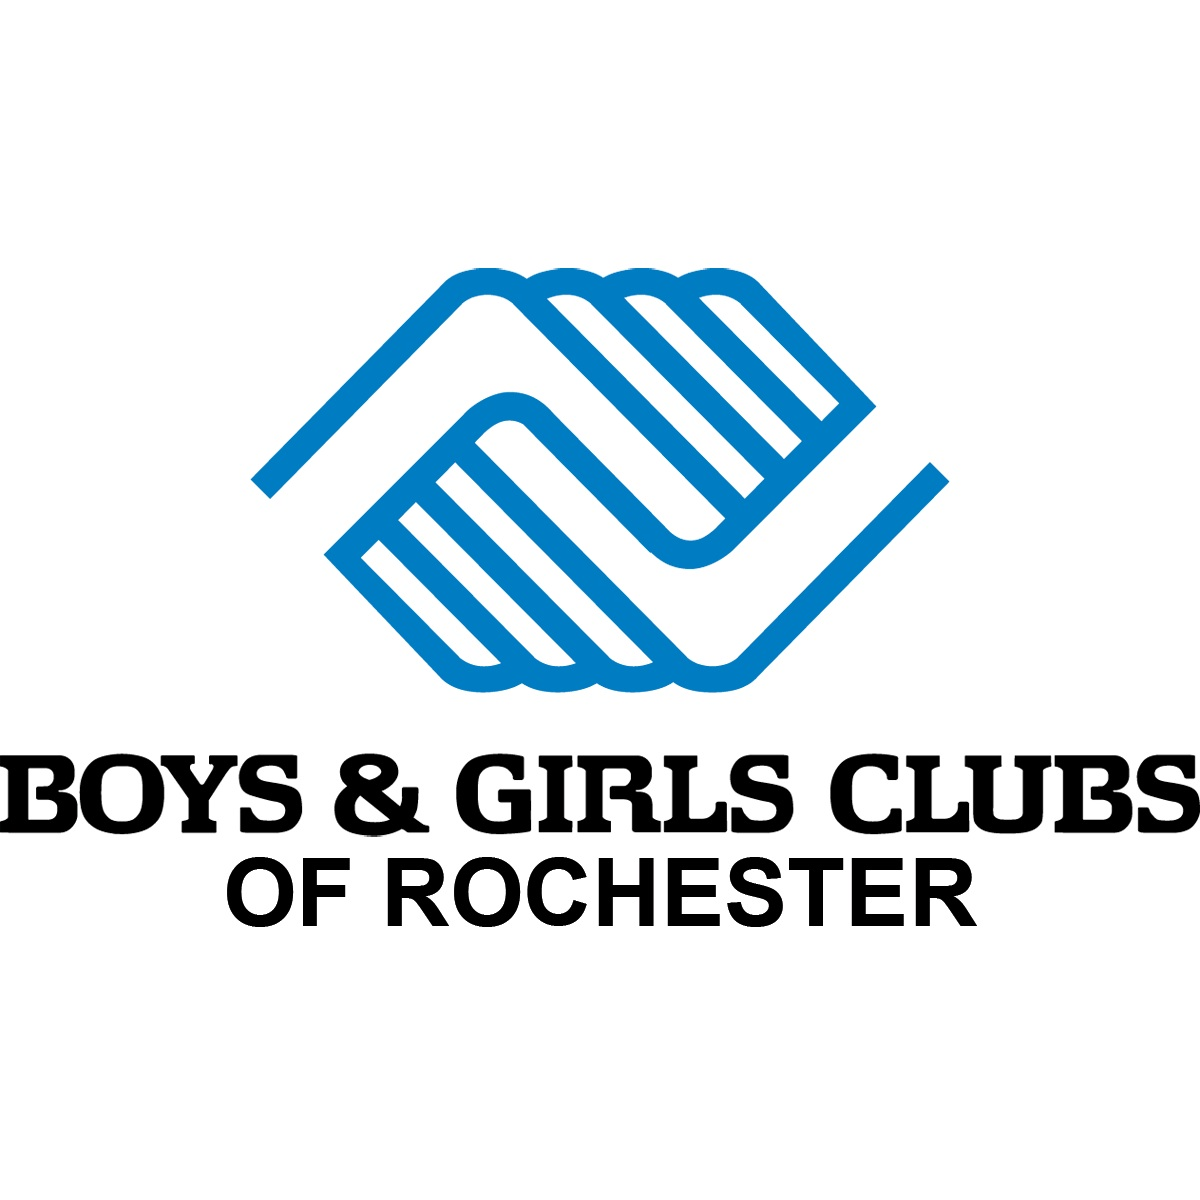 Boys & Girls Clubs of Rochester